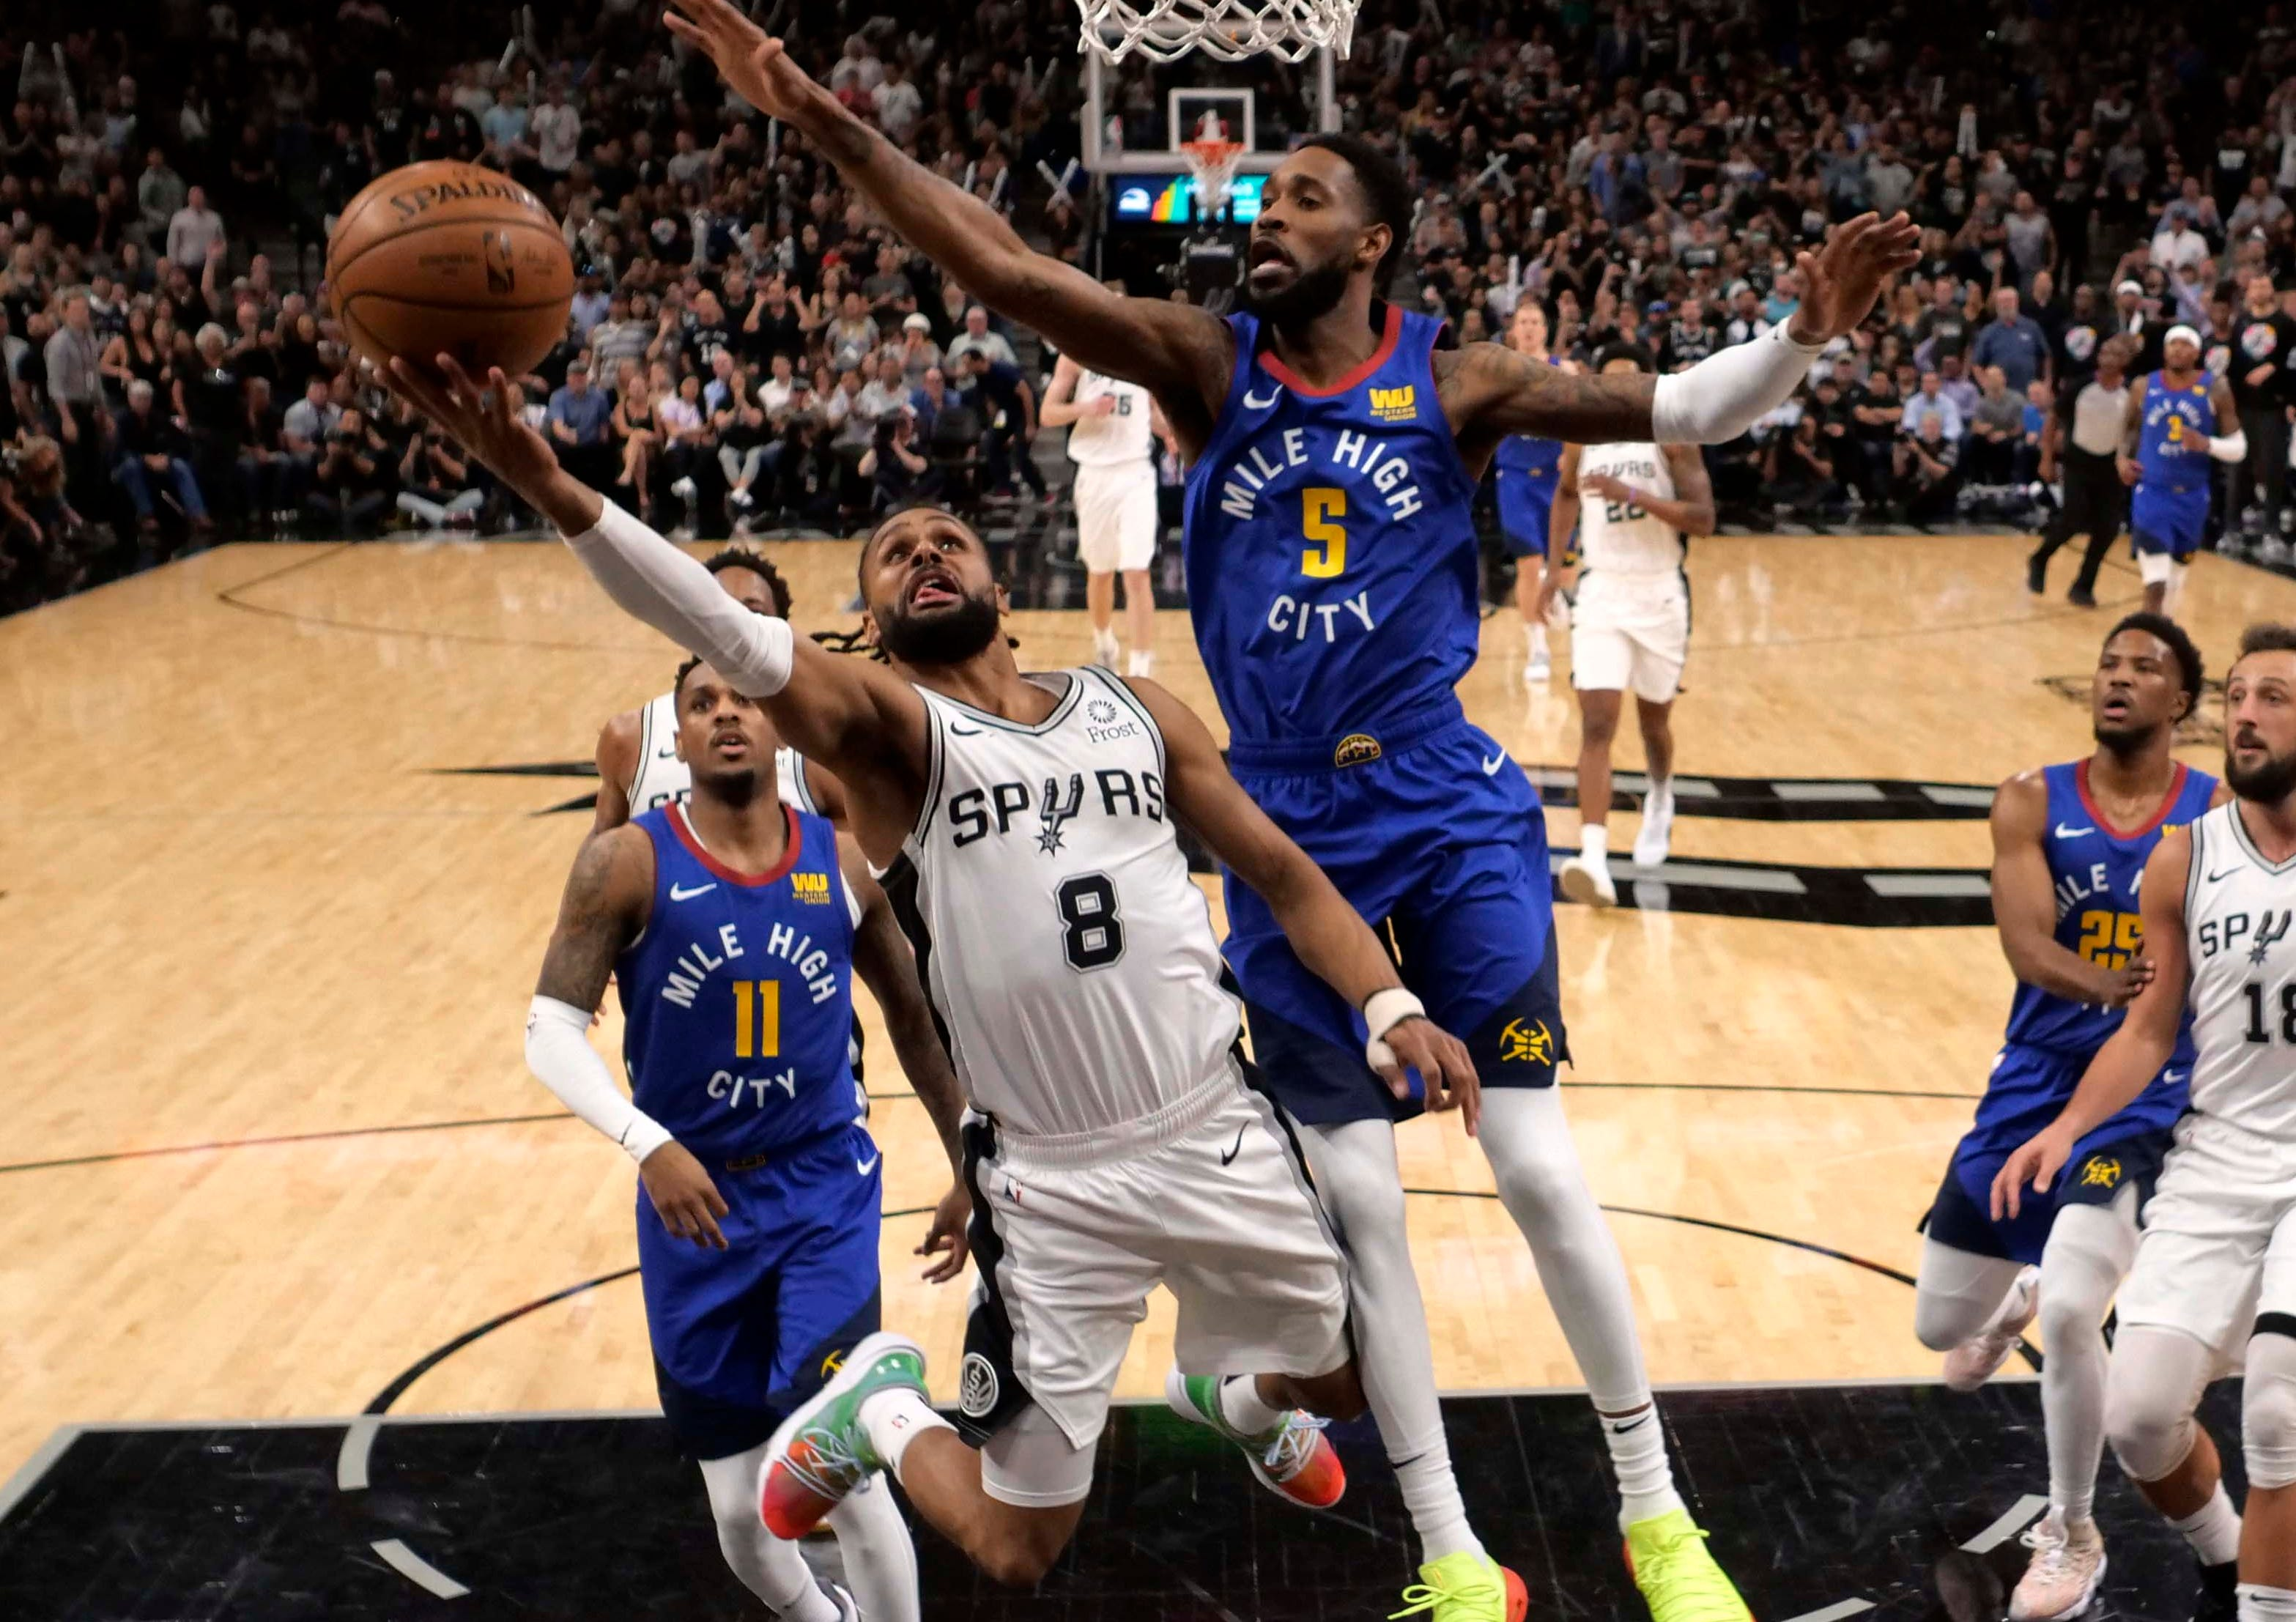 April 25: Spurs guard Patty Mills (8) drives to the bucket against Nuggets defender Will Barton (5) during Game 6 in San Antonio.